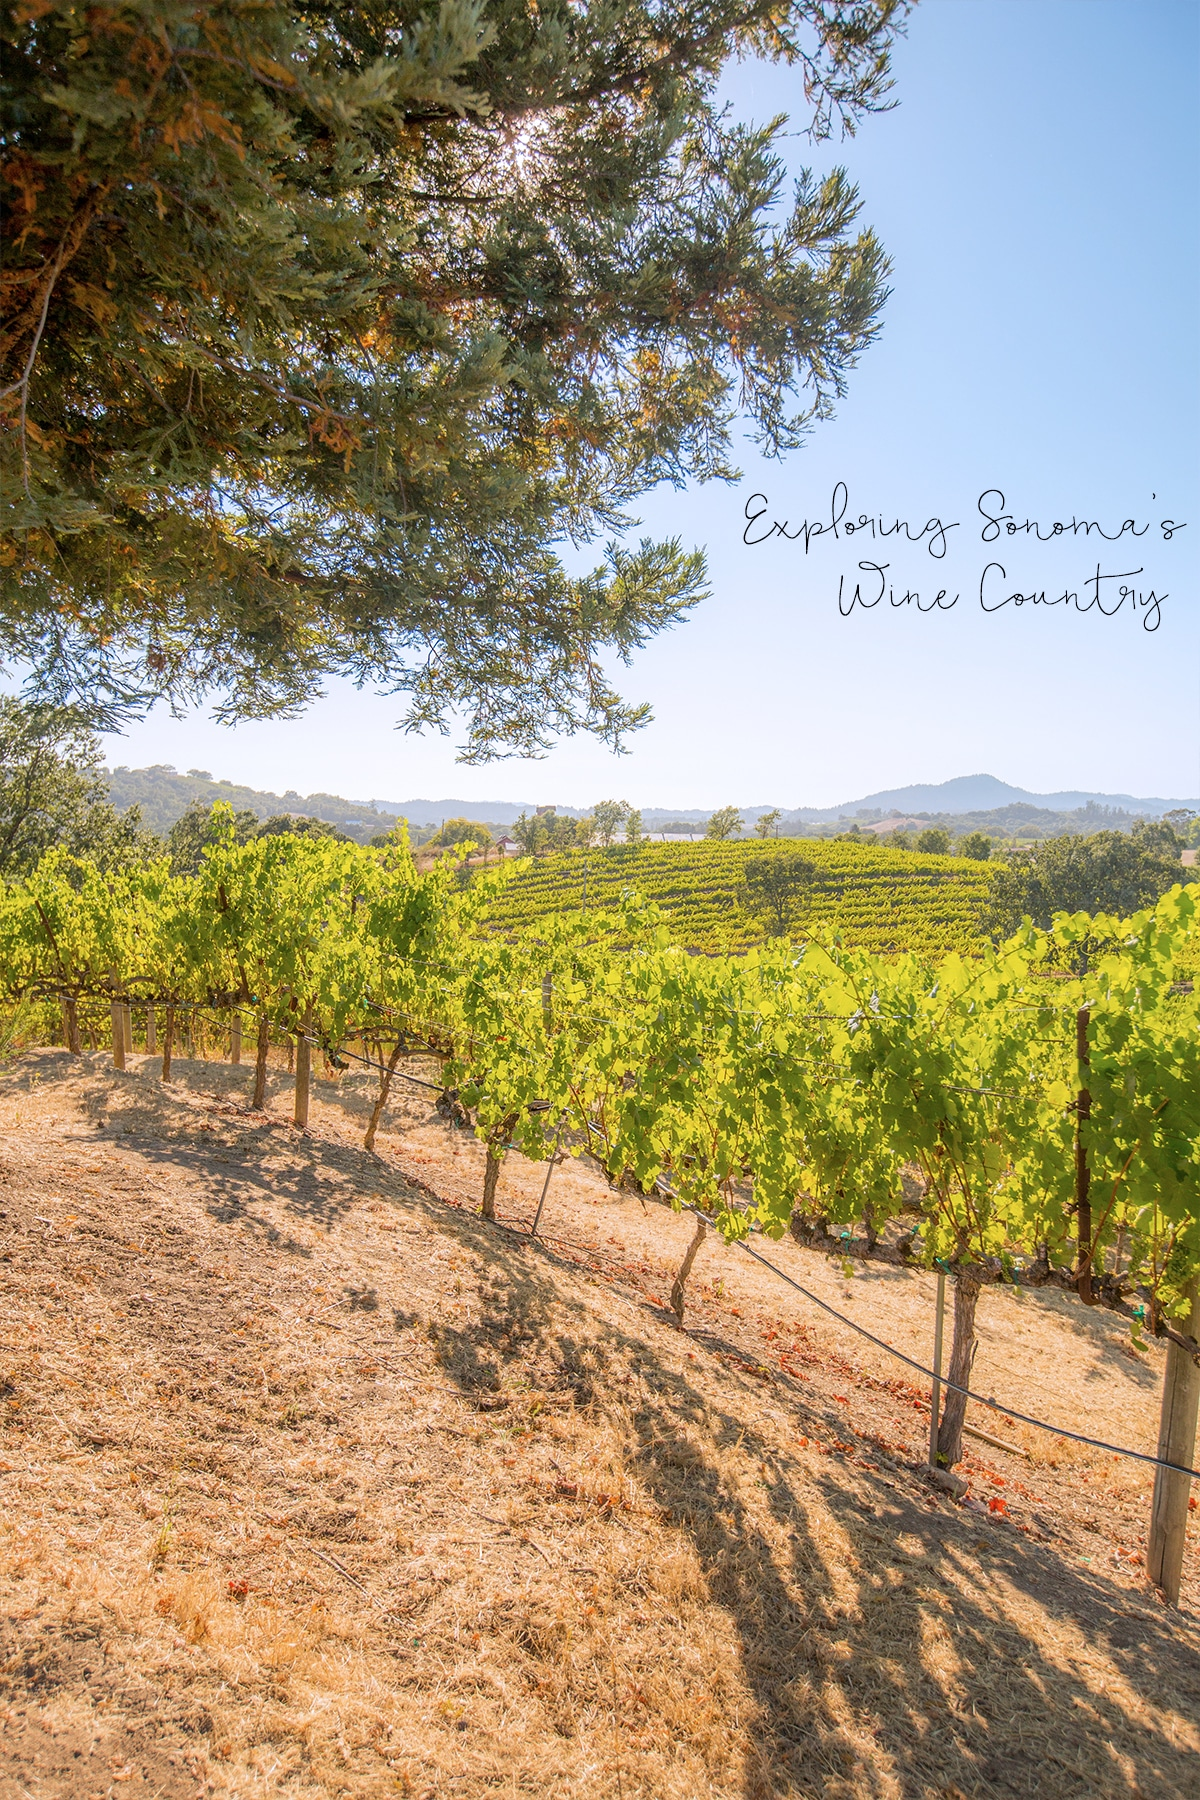 Exploring sonoma's wine country- the most gorgeous place in California!